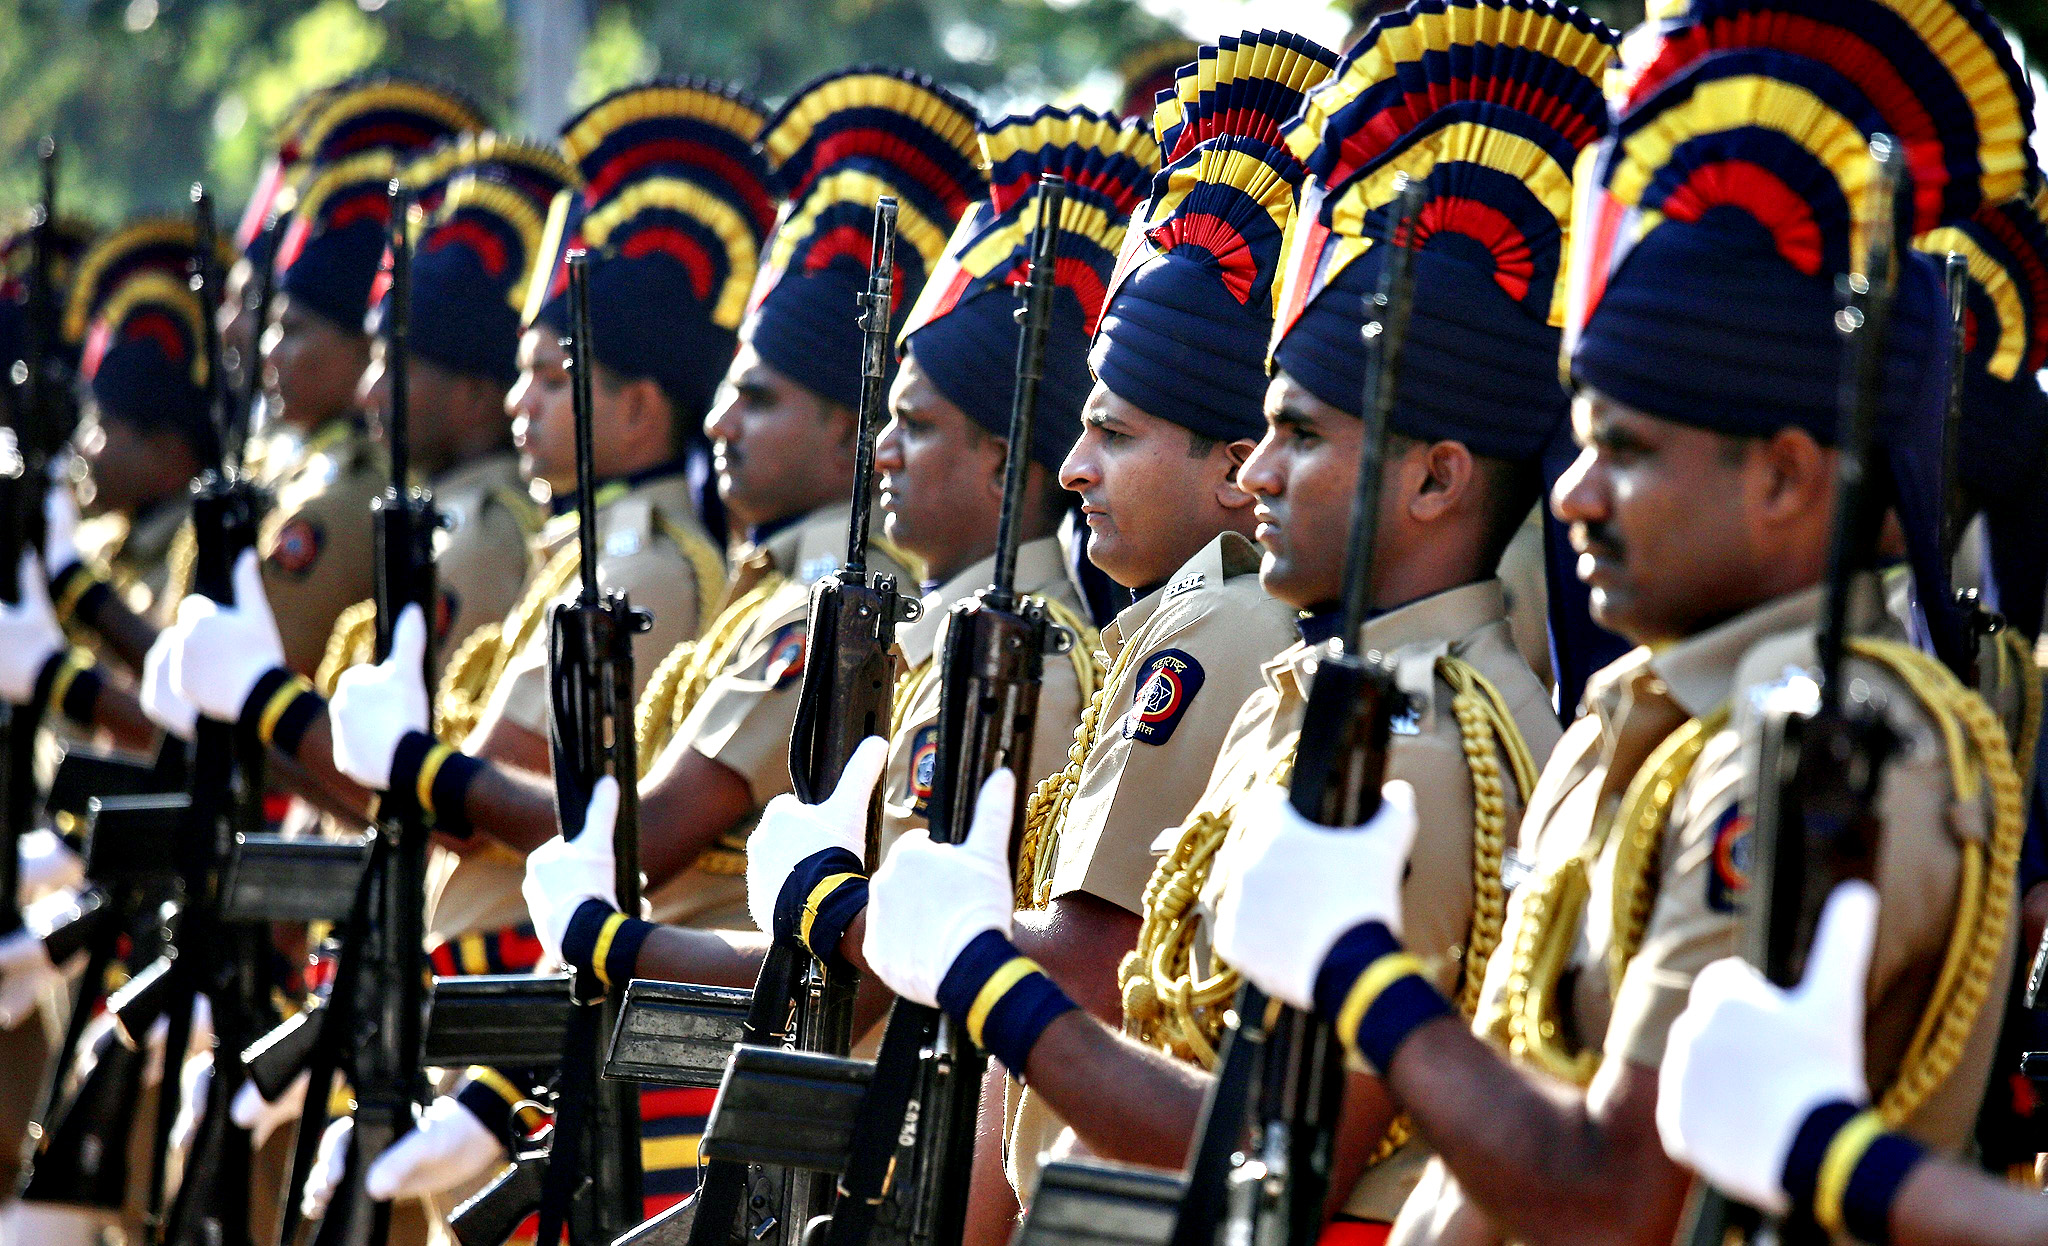 Indian police personnel pay tribute at the memorial built in memory of victims killed in Mumbai terror attacks, on the sixth anniversay, in Mumbai, India, 26 November 2014. More than 160 people, including 26 foreign nationals, died in the three-day attack on Mumbai on 26 November 2008 by 10 gunmen, nine of whom were killed by security forces.